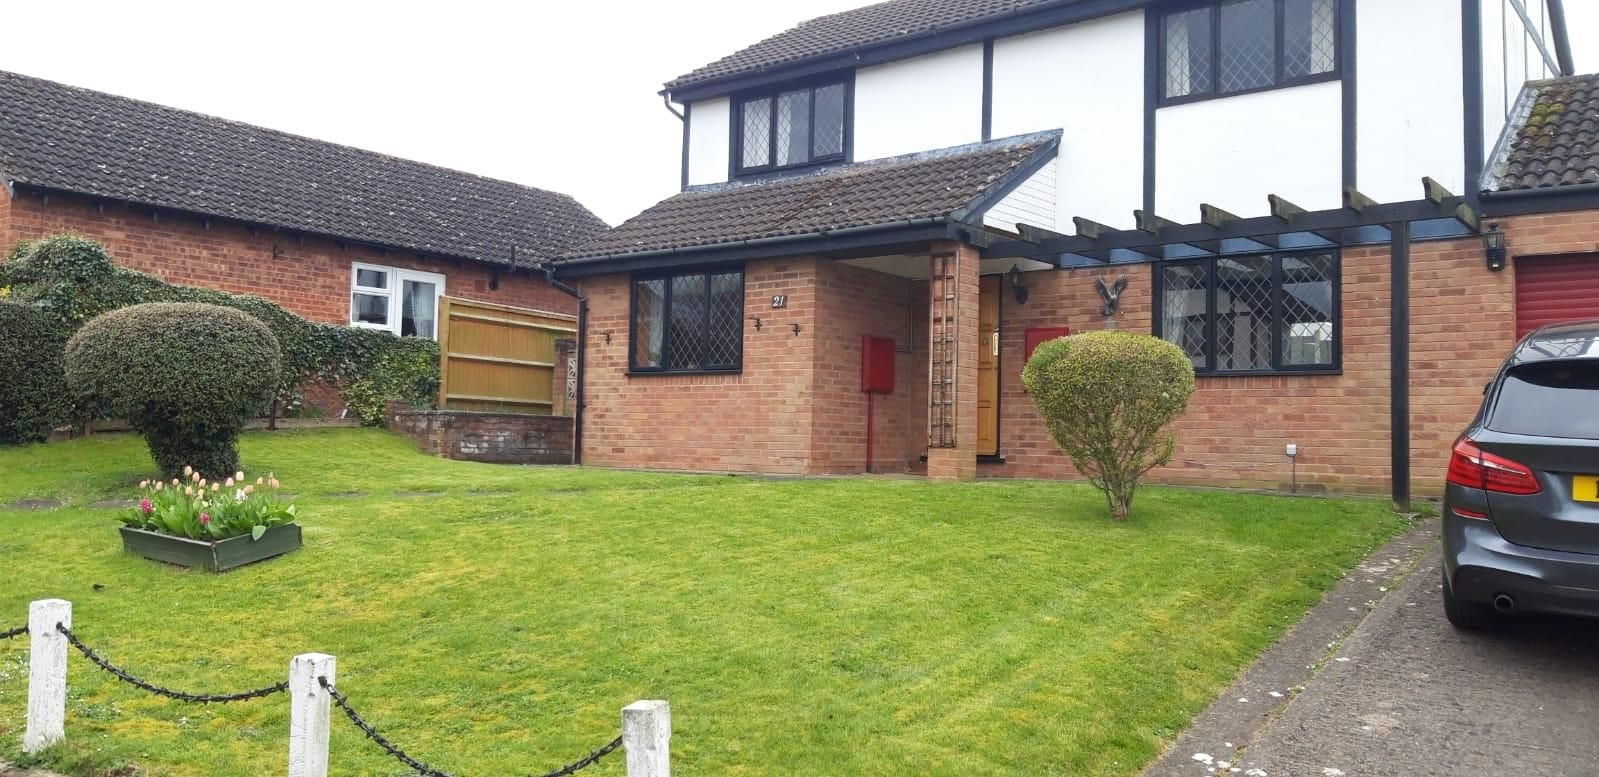 3 bed detached for sale in Leominster 13